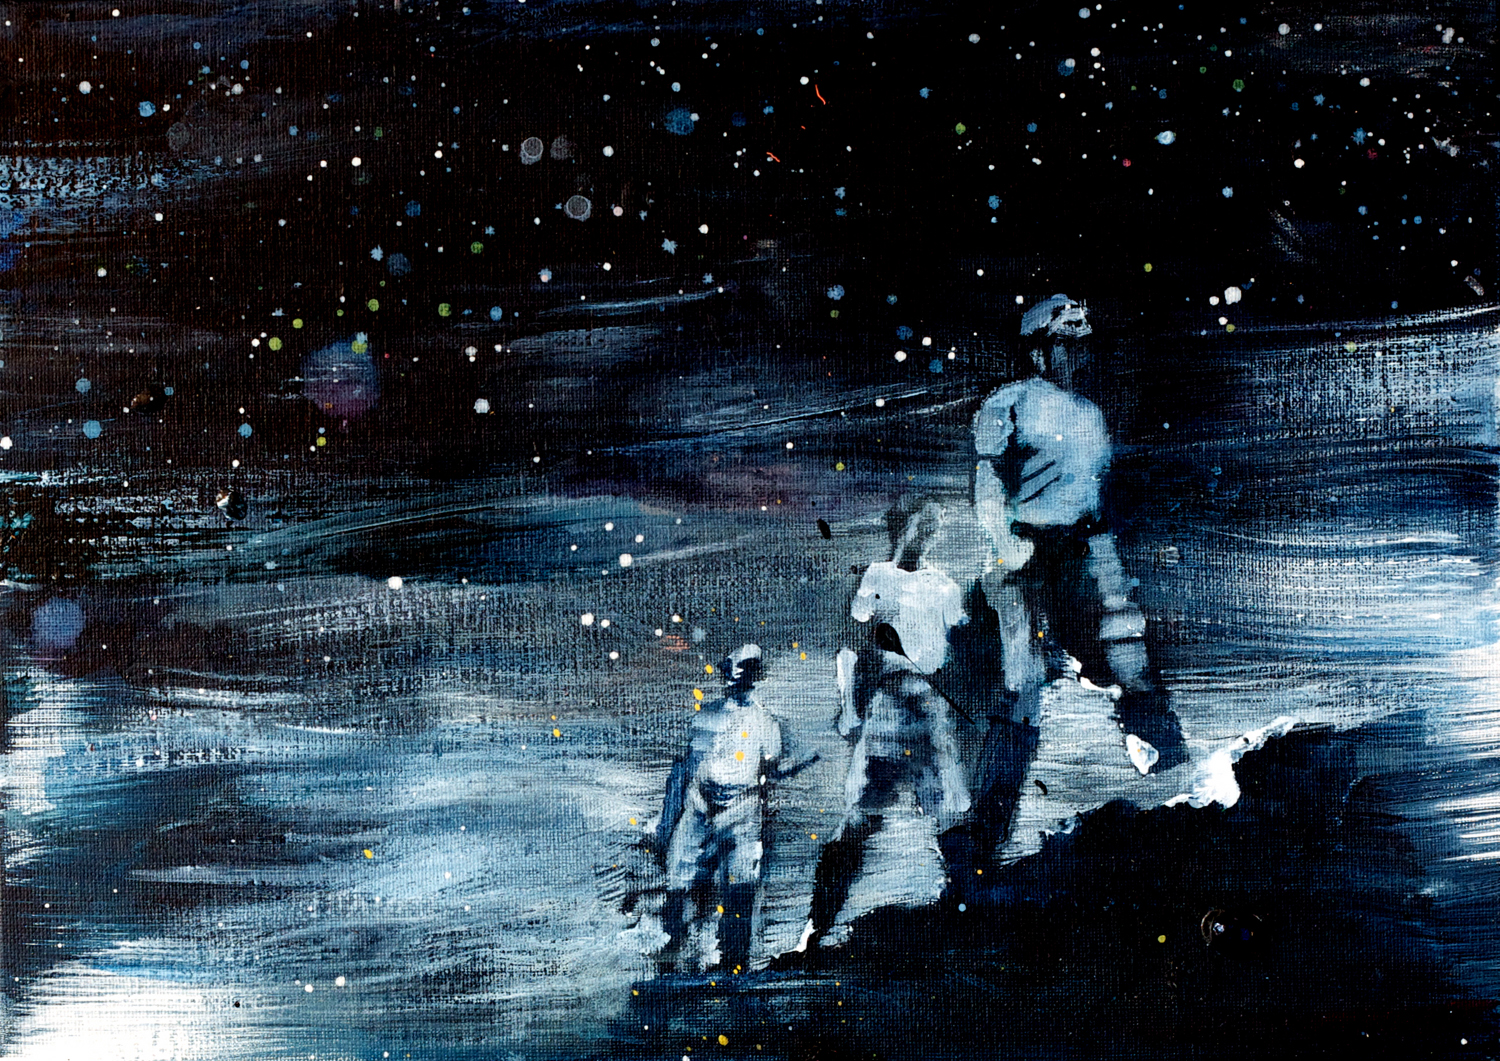 """Kathryn Cowen, """"Space Rangers"""", 2013, acrylic and ink on canvas, 25.4 x 35.6cm"""